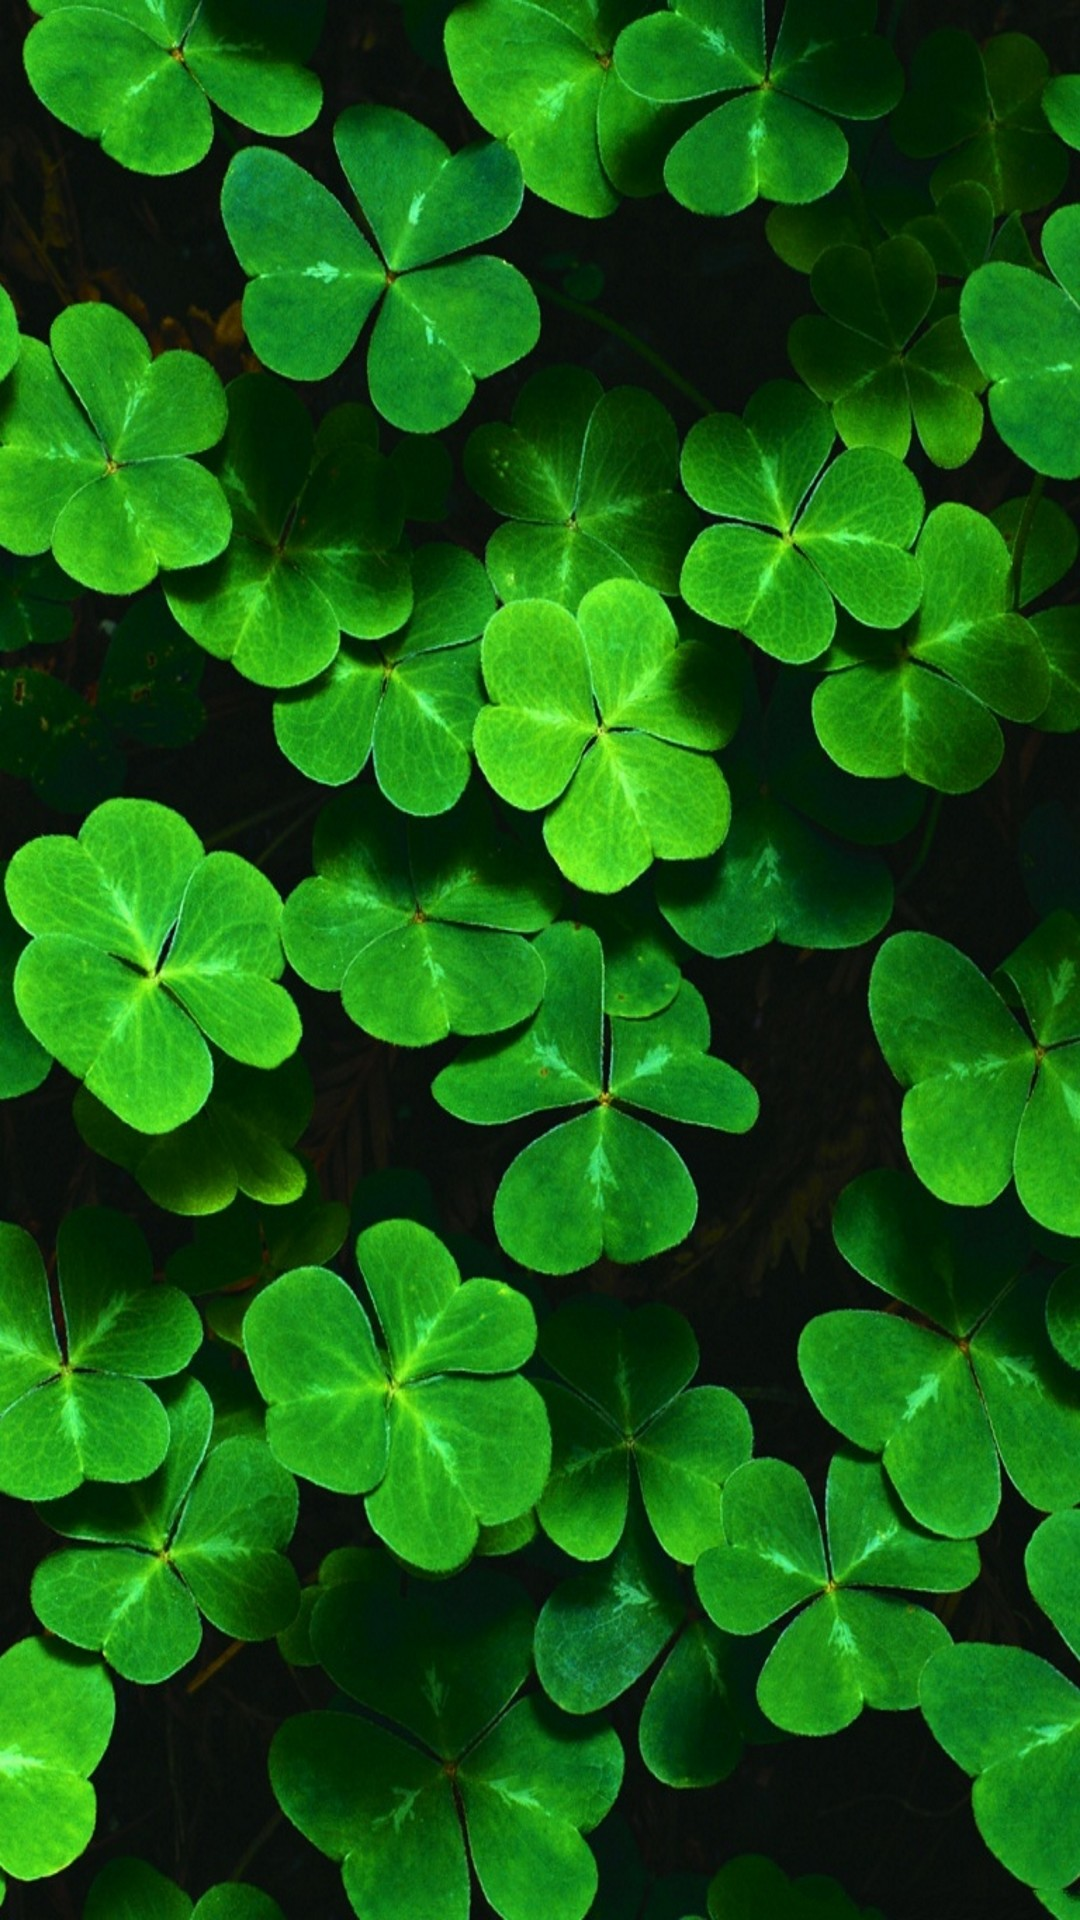 1080x1920 Customize your iPhone 6 Plus with this high definition Shamrocks wallpaper  from HD Phone Wallpapers!